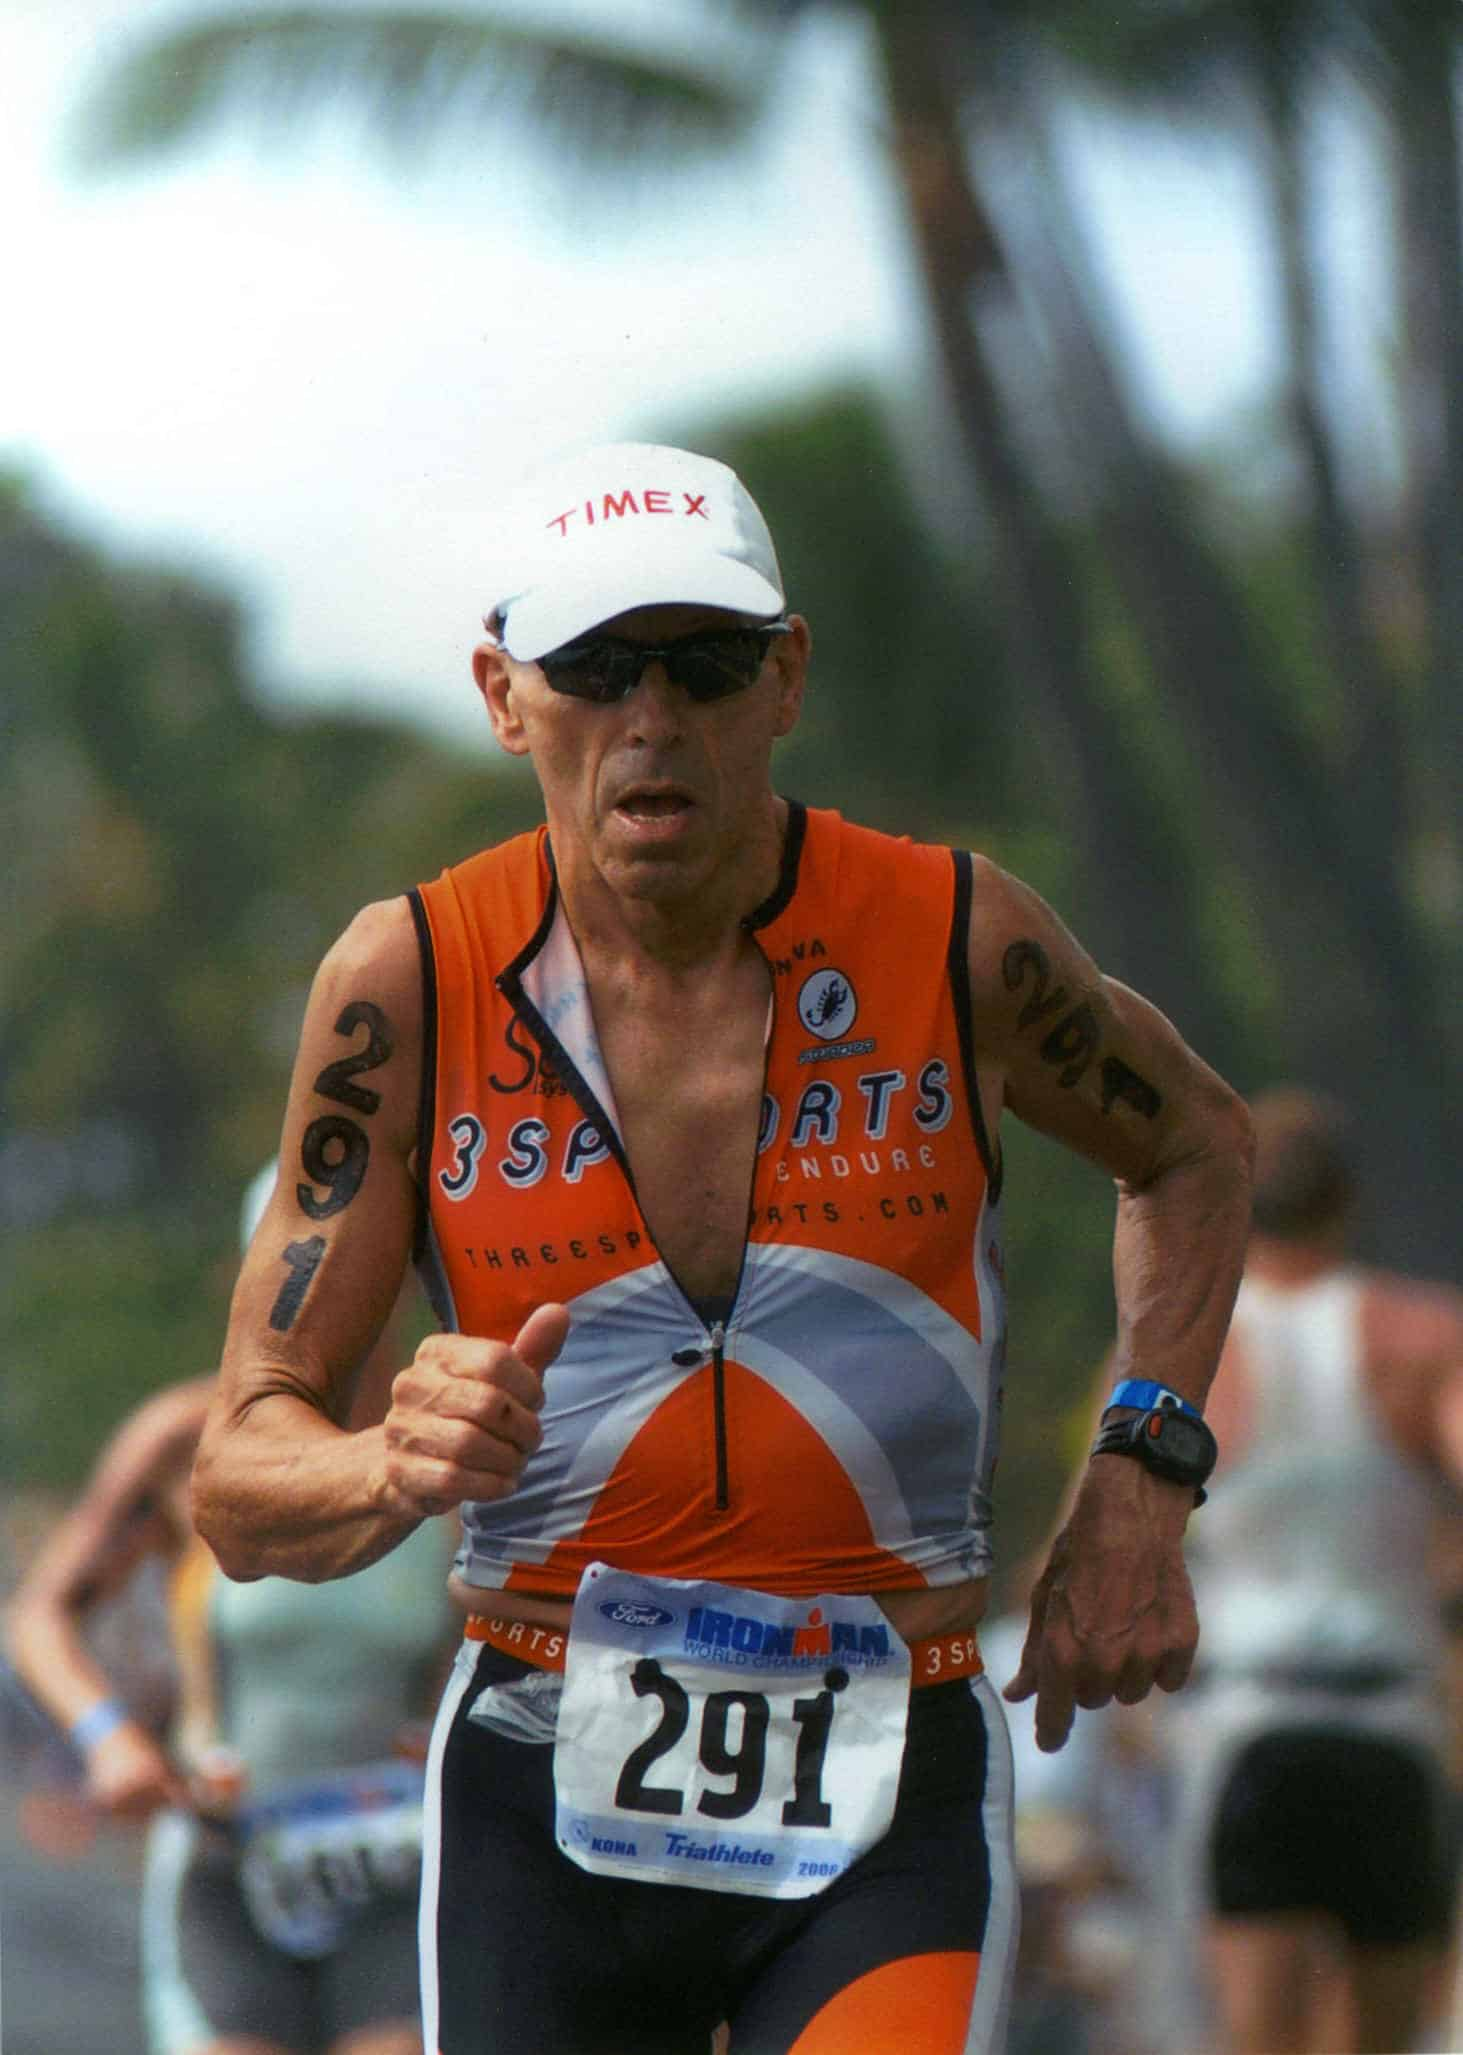 Tom Waldrop running at Ironman World Championships, Kona, HI